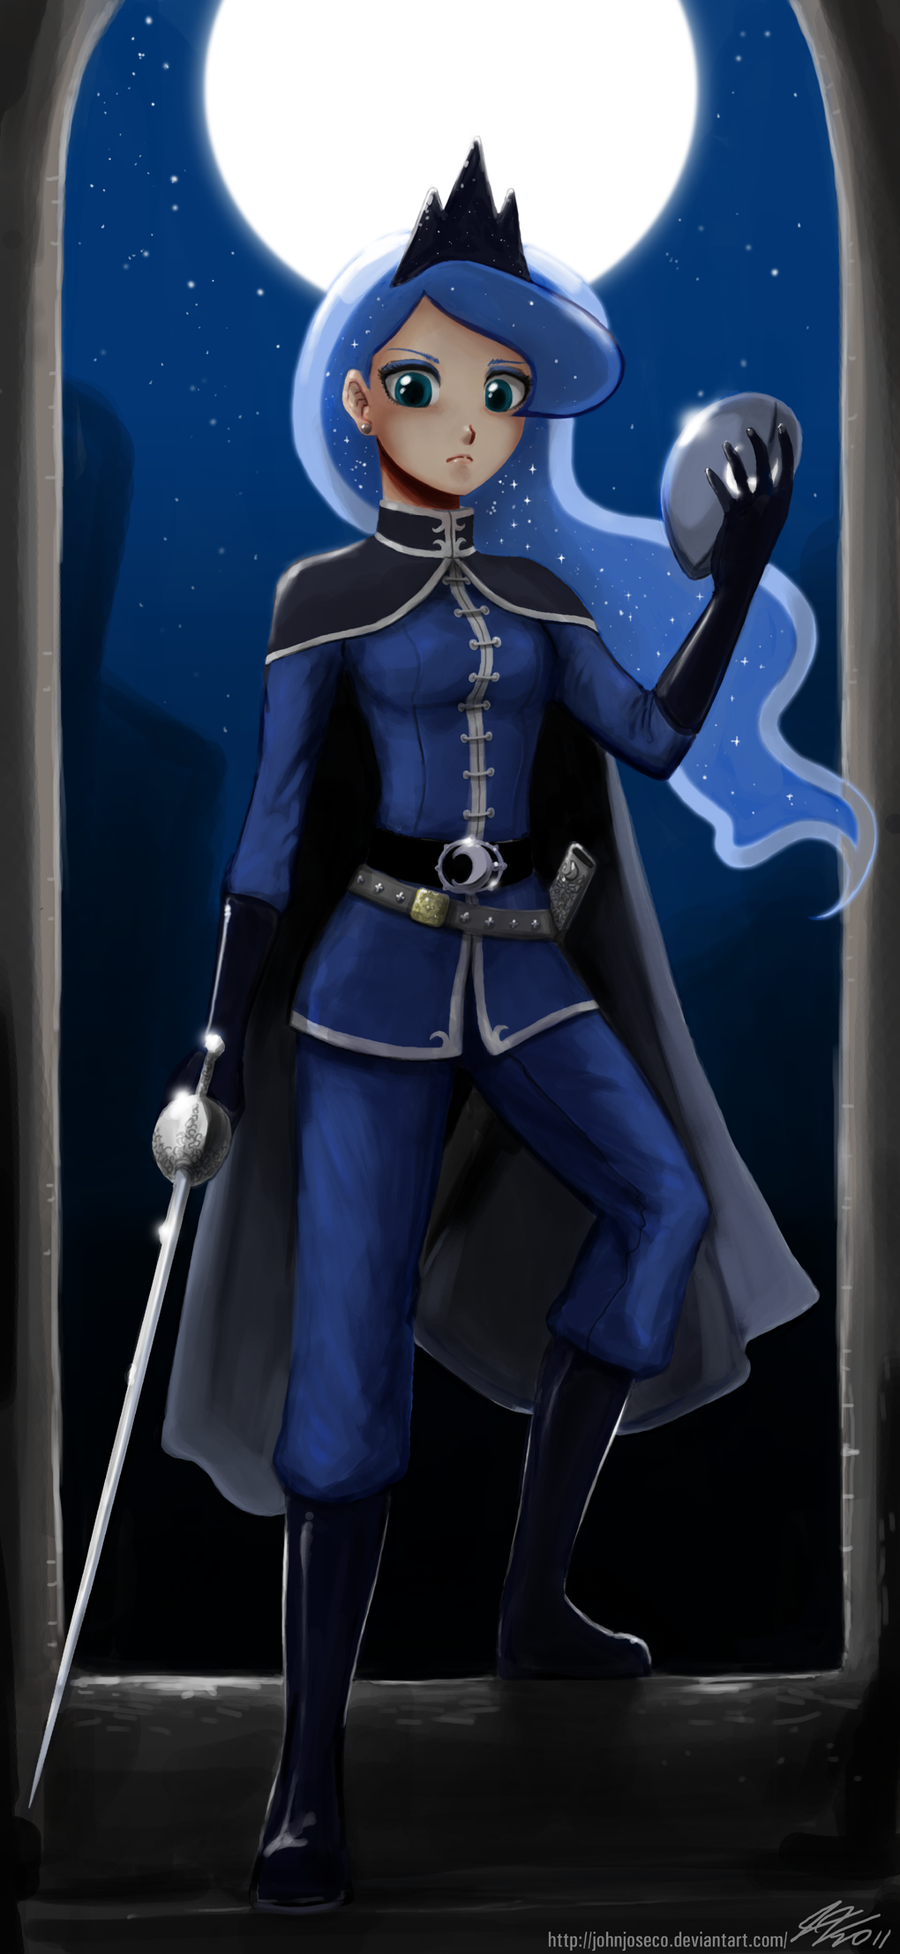 All Hail The Lunar Republic by johnjoseco on DeviantArt